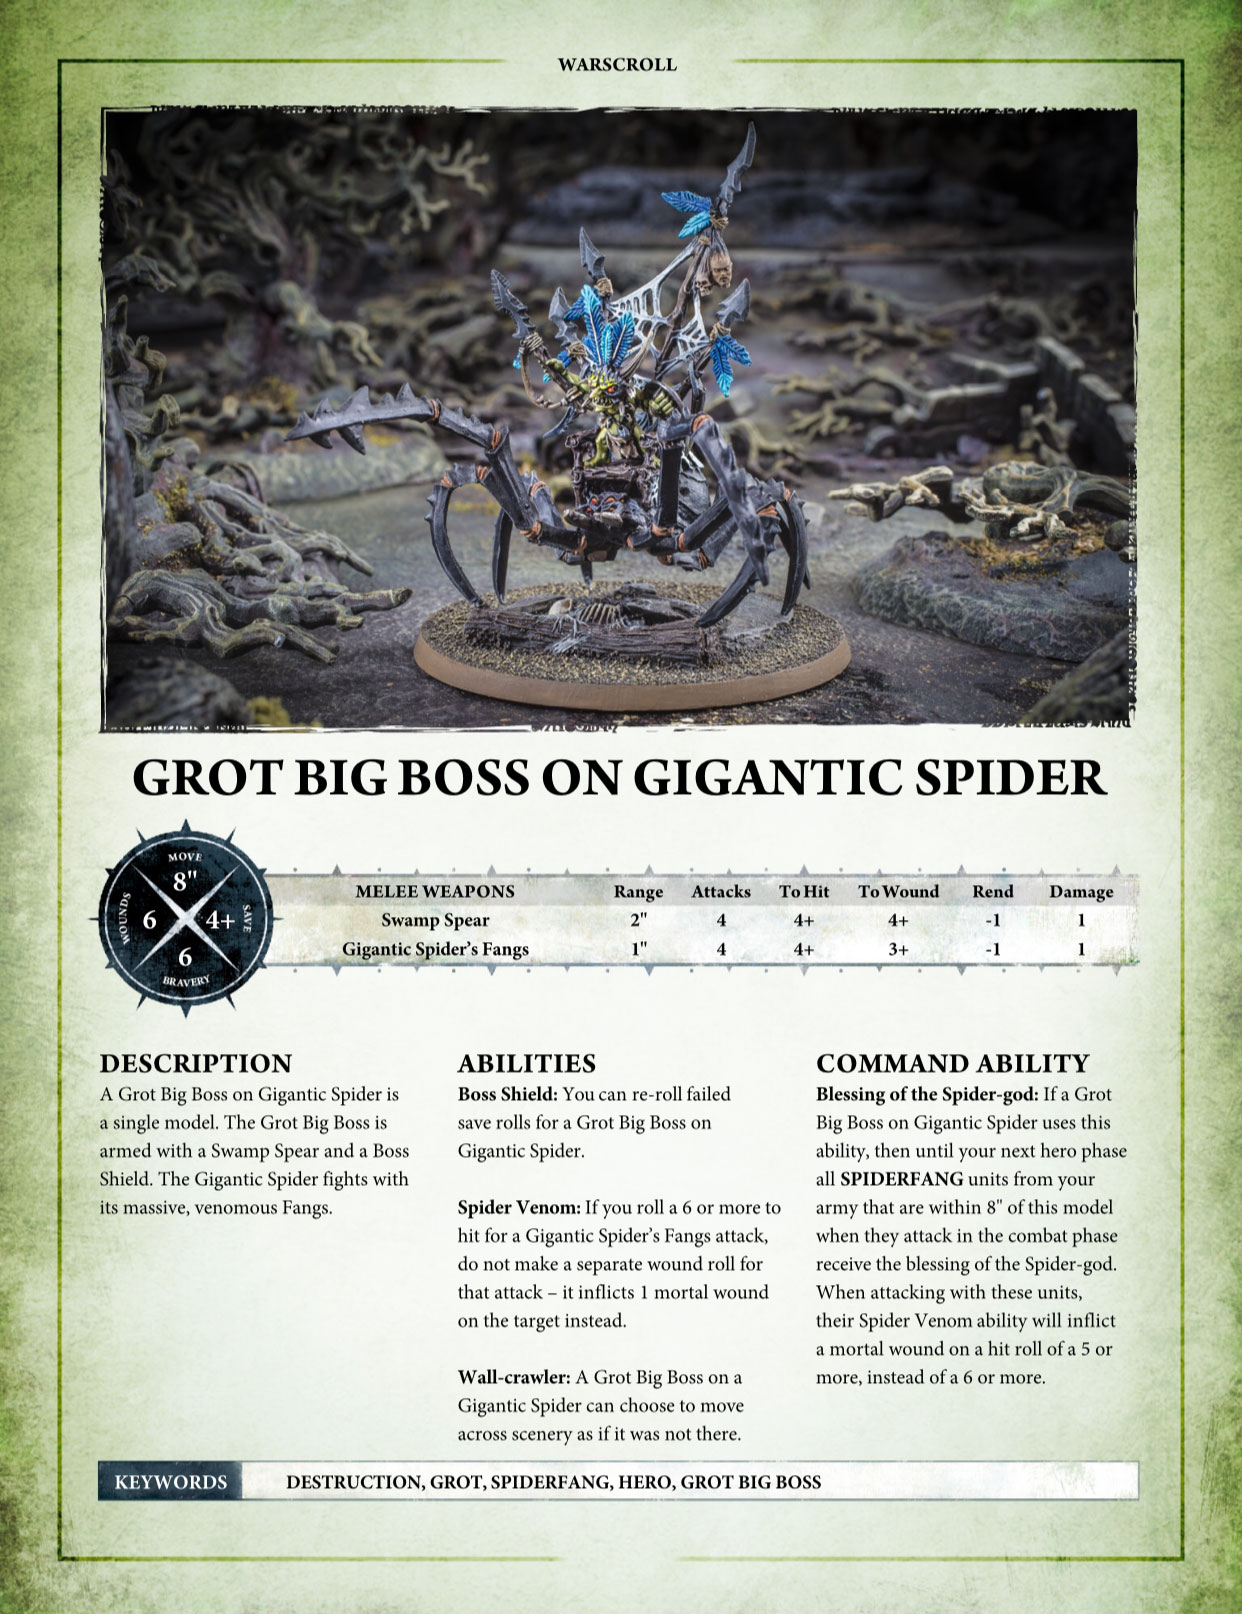 grot-big-boss-gigantic-spider-scroll